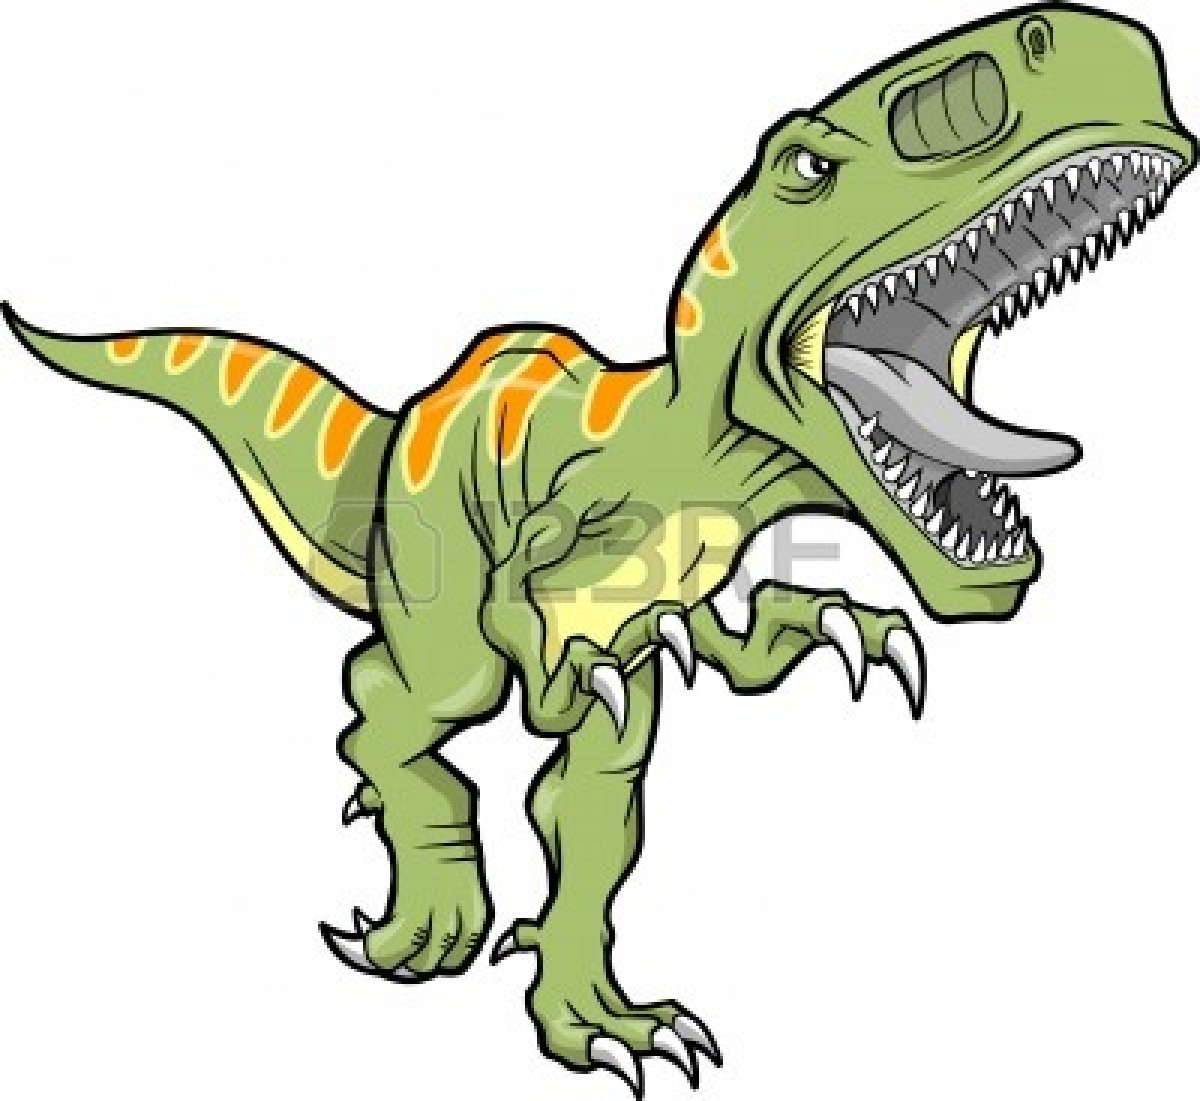 Tyrannosaurus Rex clipart #14, Download drawings